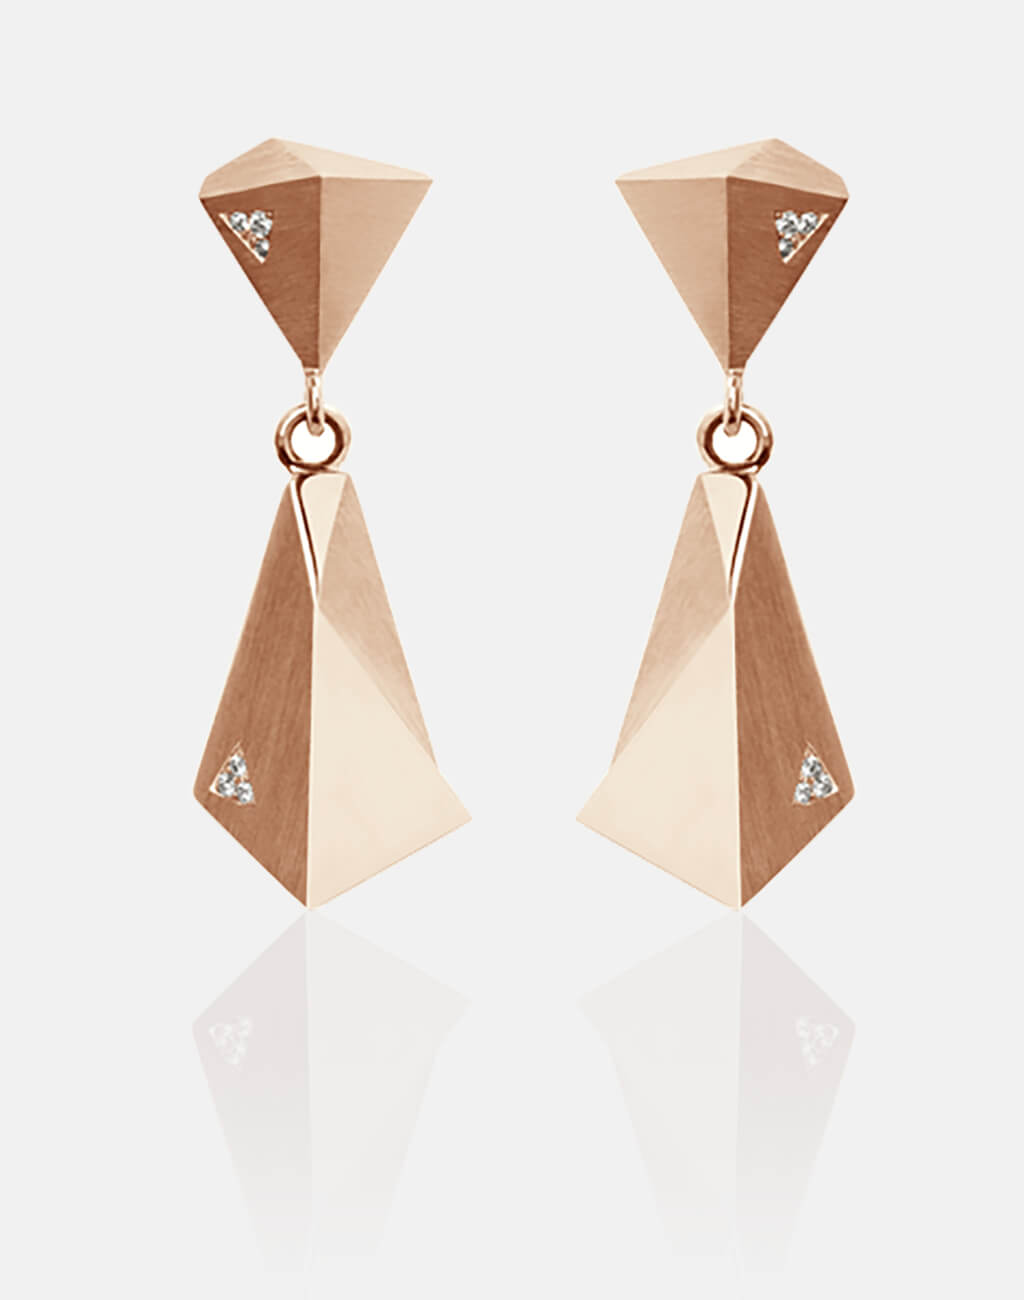 Stealth | Ohrringe, Ohrhänger 750/- Rosegold, 12 Brillanten, Diamanten | earrings 18kt rose gold, diamonds | SYNO-Schmuck.com